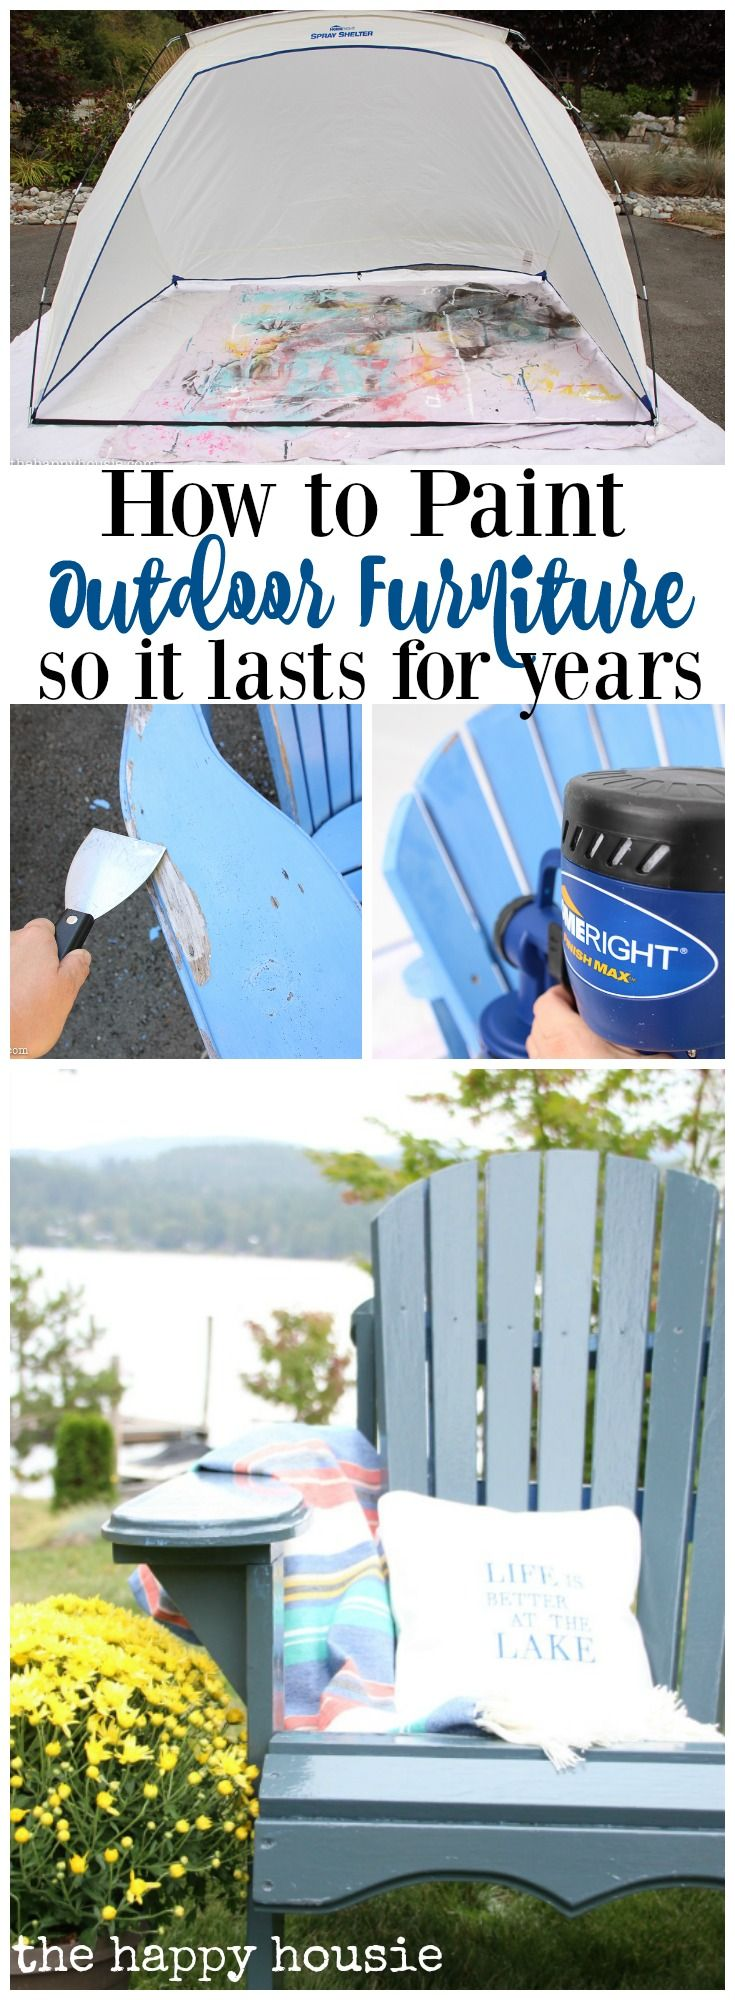 The best way to paint your outdoor furniture so that the finish lasts for years in the elements